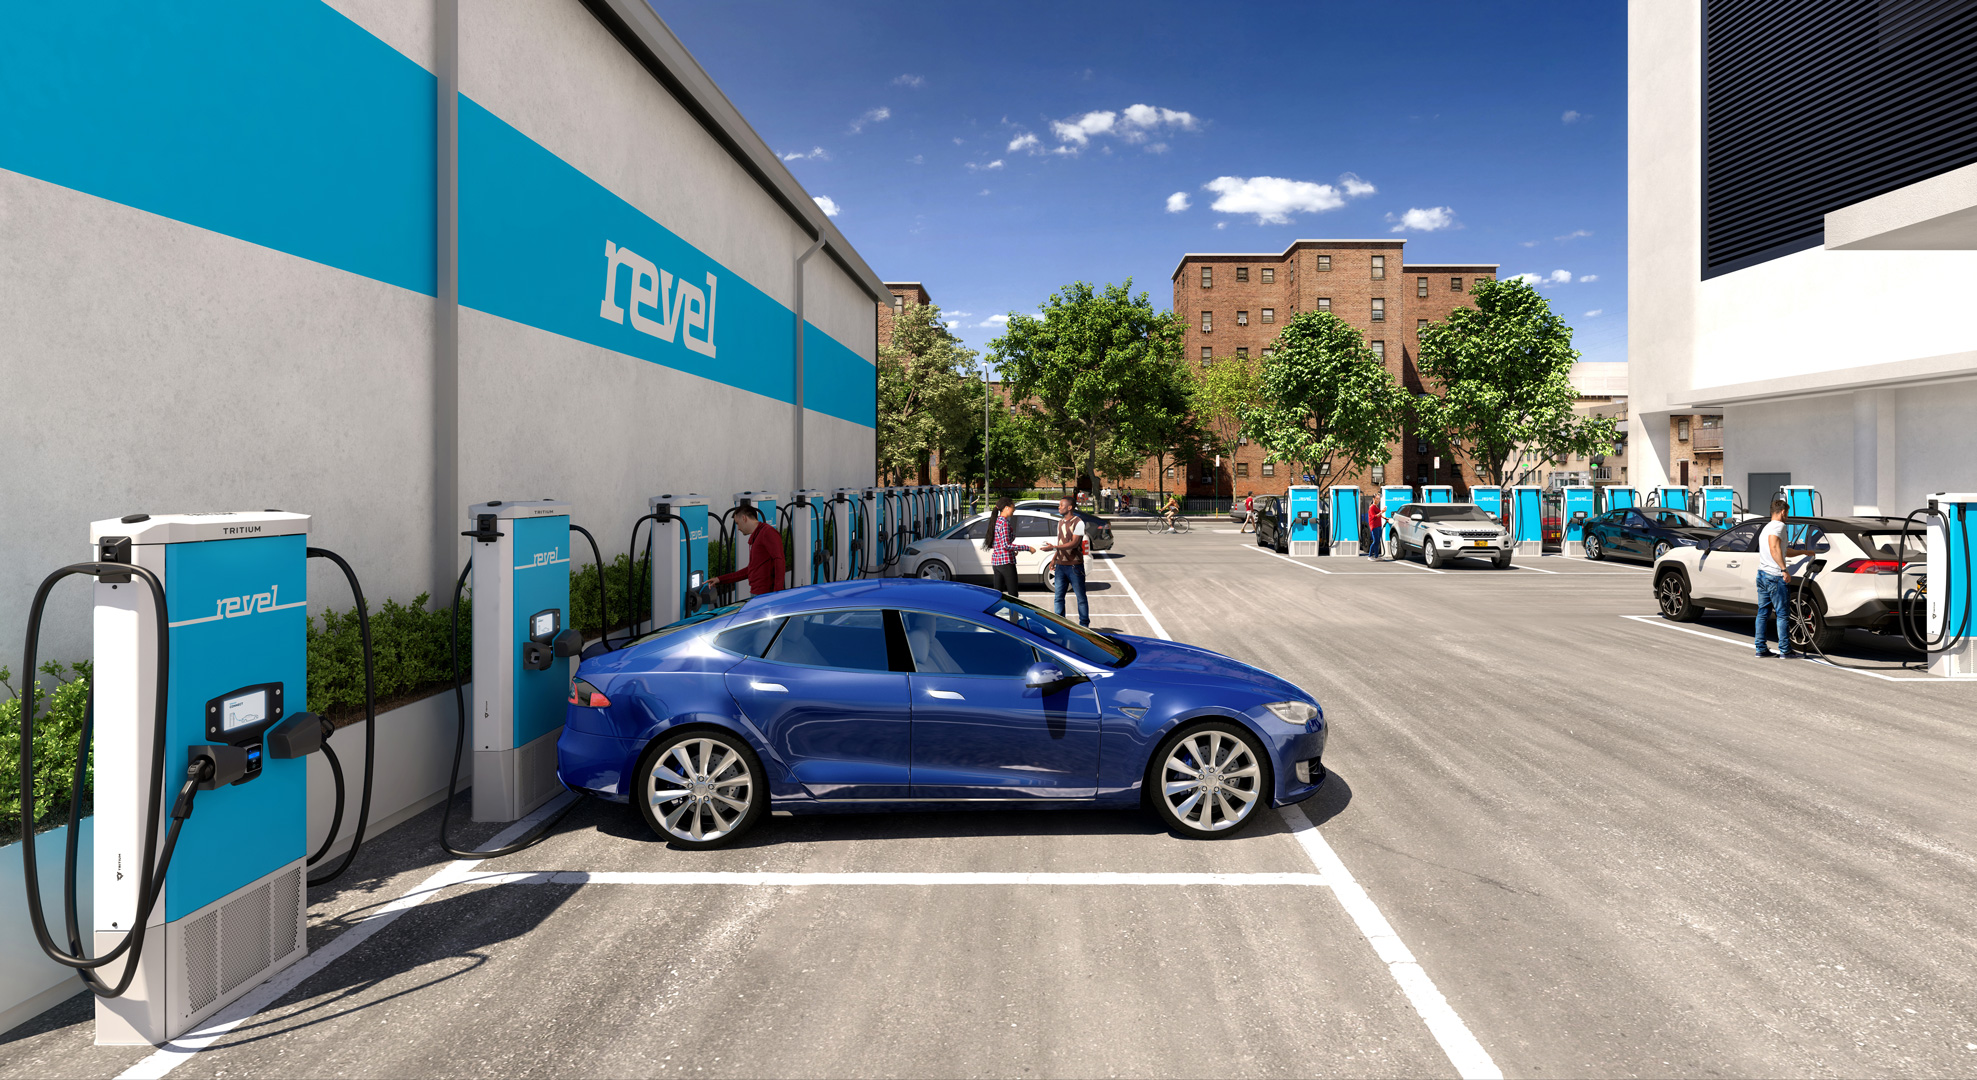 Photo of a parking lot with a number of Revel electric car fast-chargers